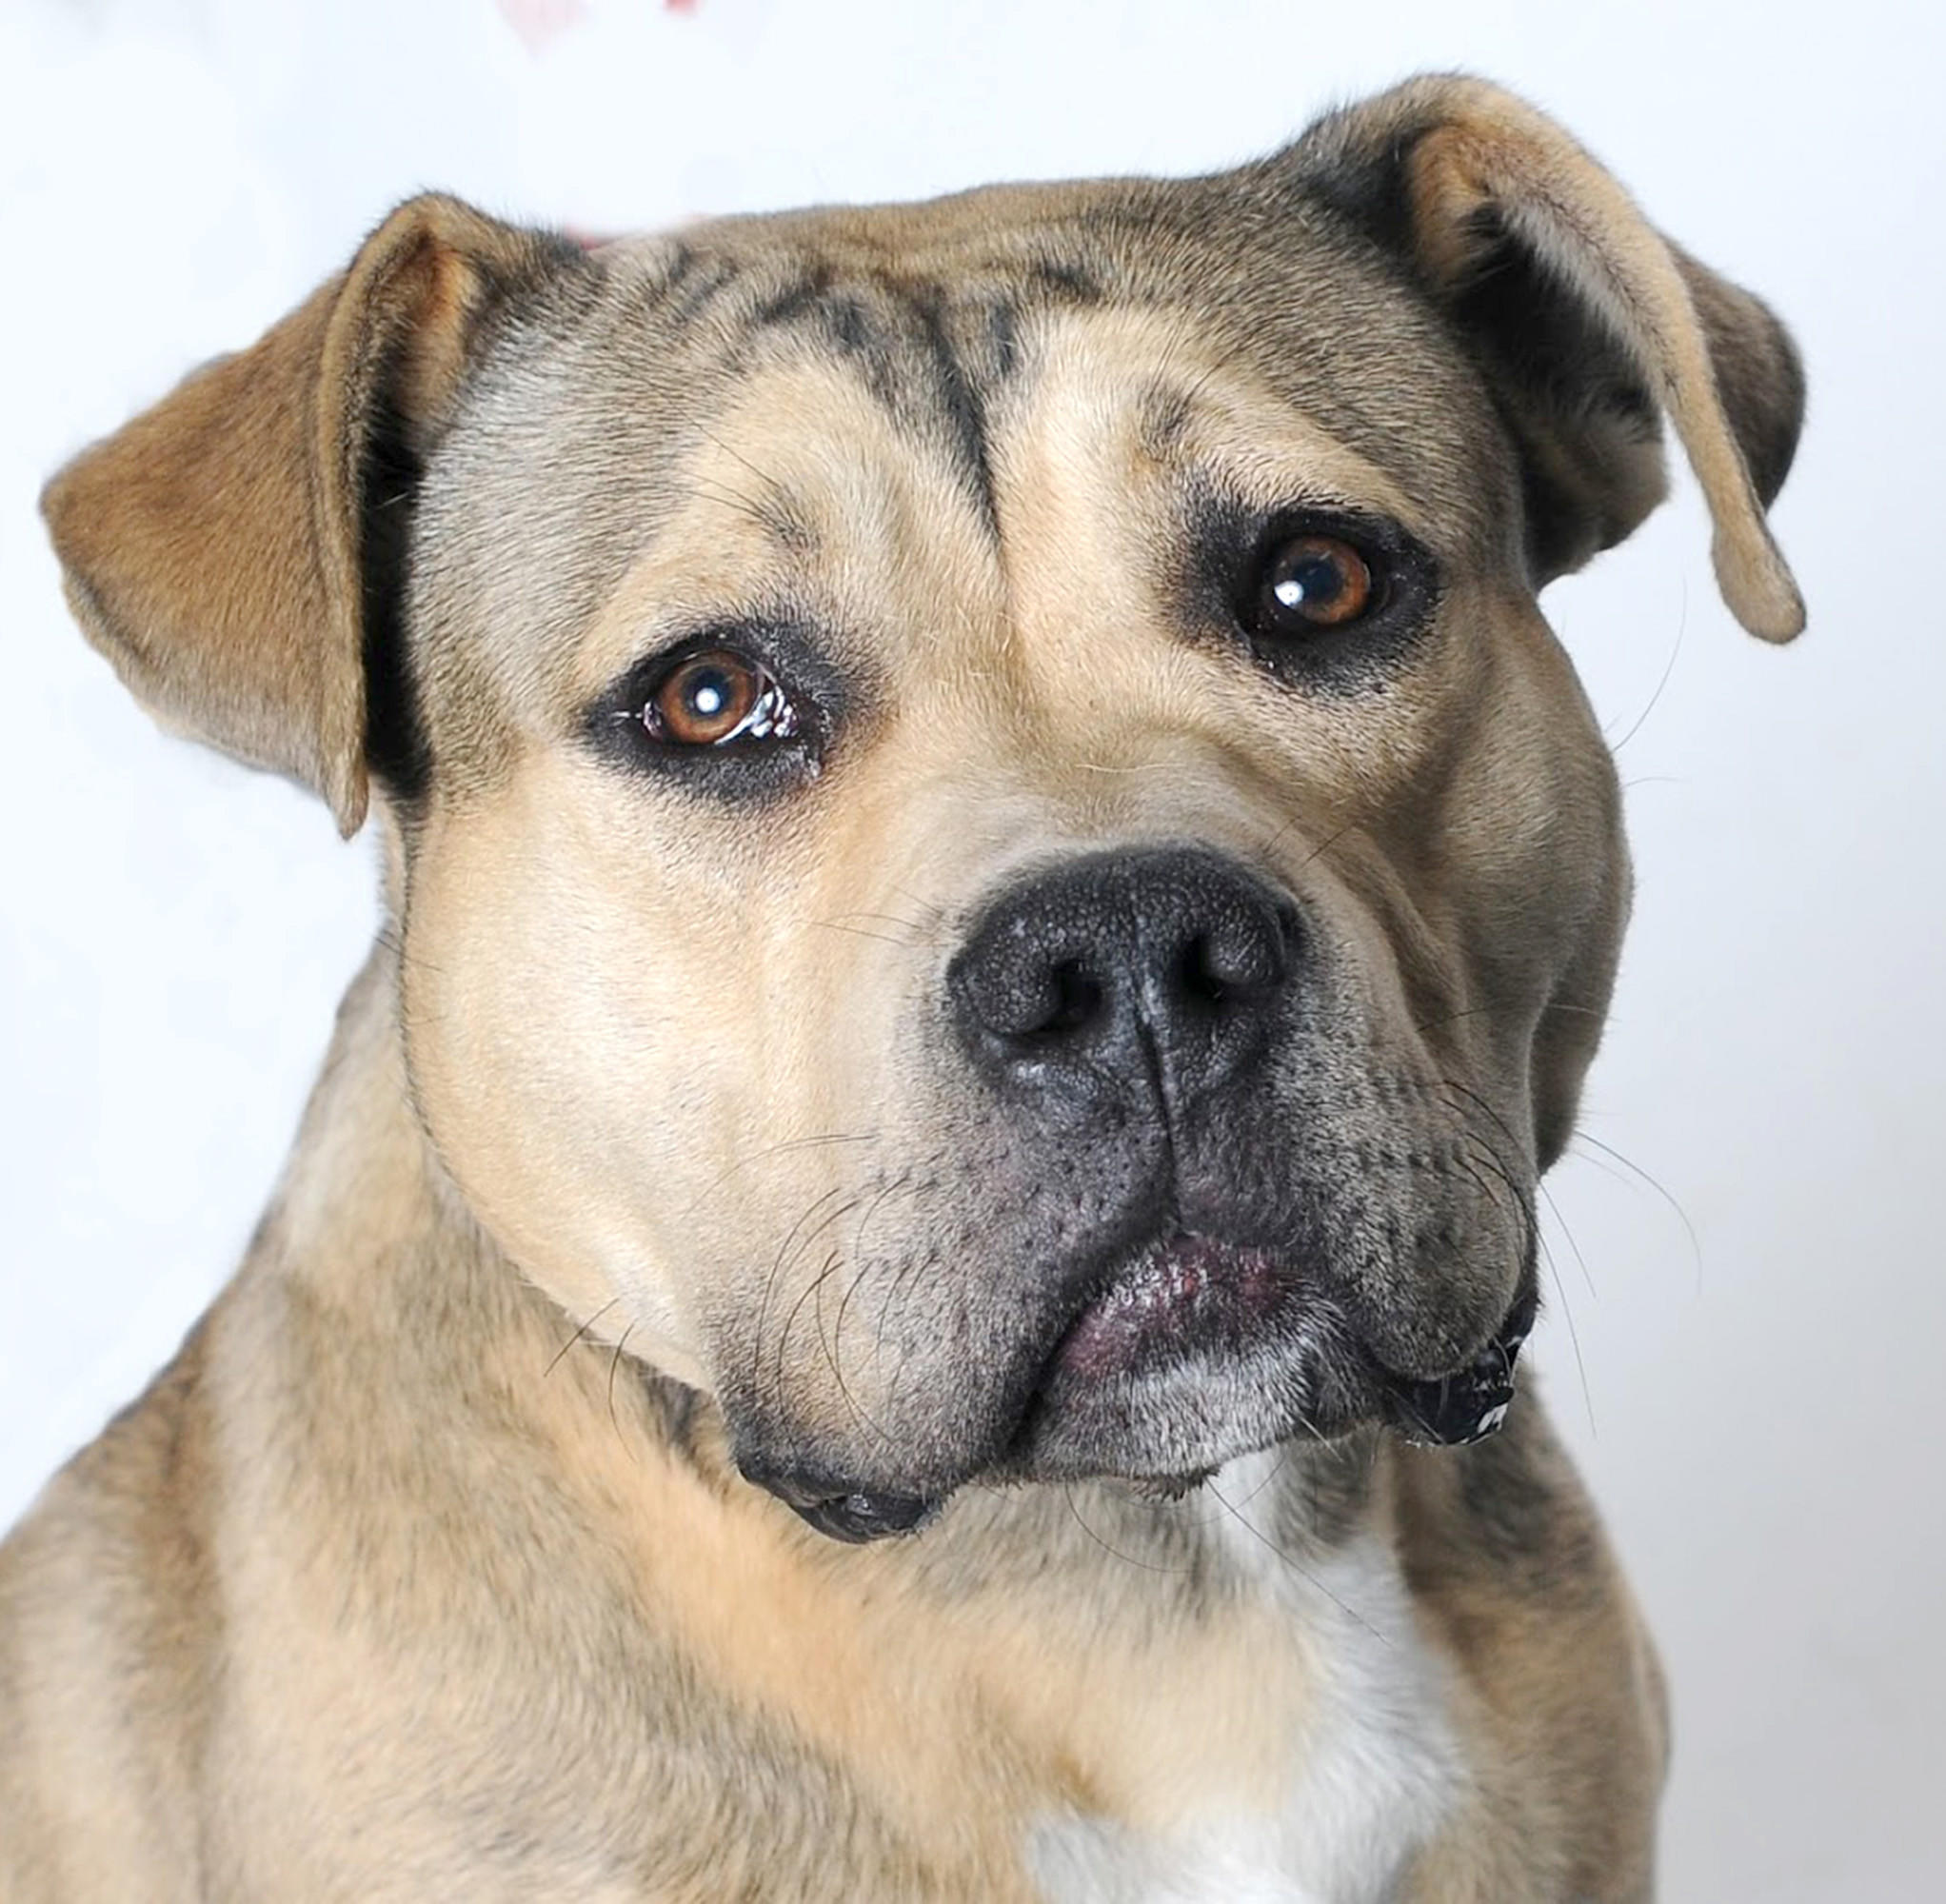 Roo is a 1-year-old pit bull terrier/Rottweiler mix up for adoption at the Burbank Animal Shelter.